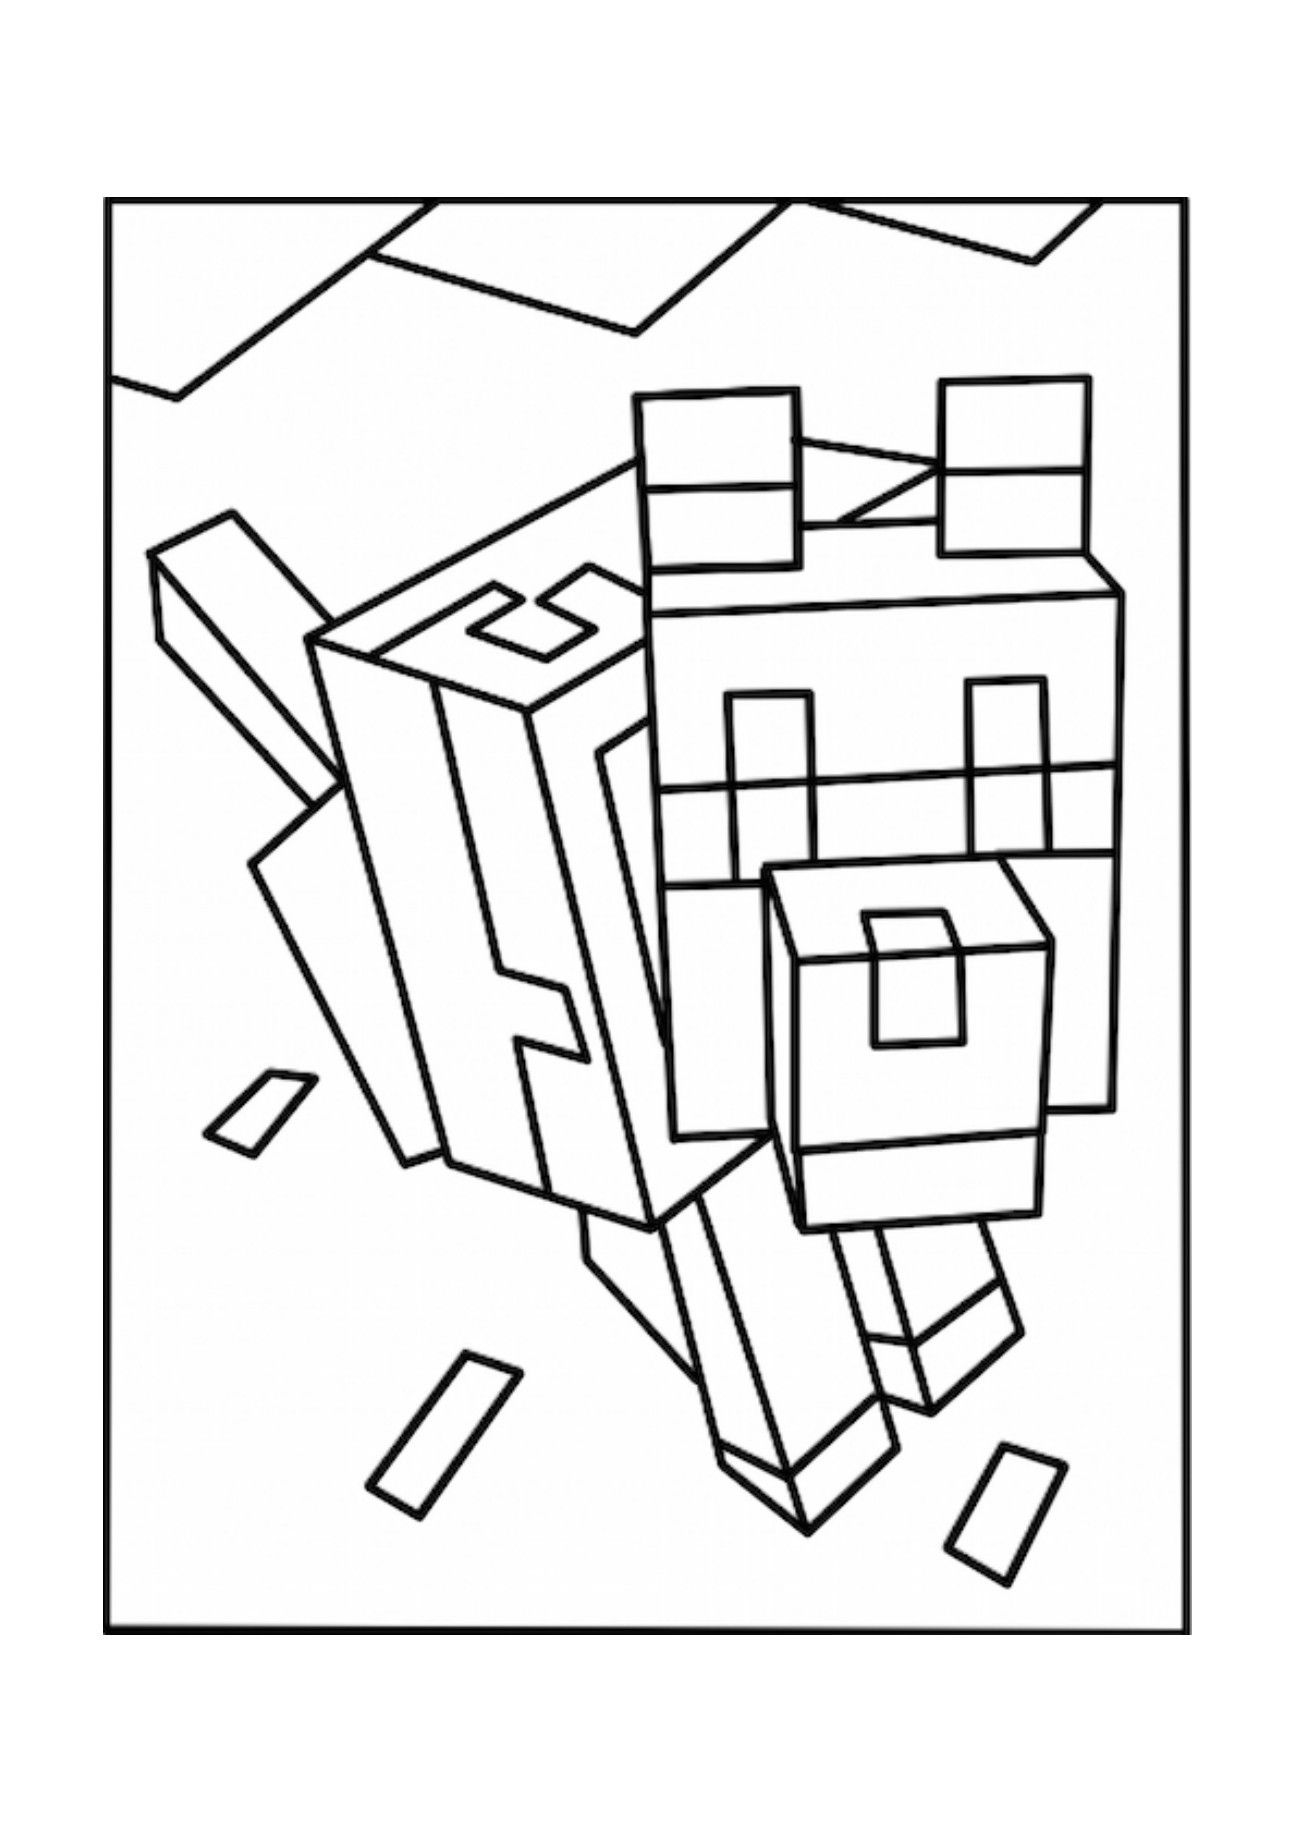 Minecraft Chicken Coloring Page Youngandtae Com In 2020 Minecraft Coloring Pages Free Coloring Pages Ninjago Coloring Pages